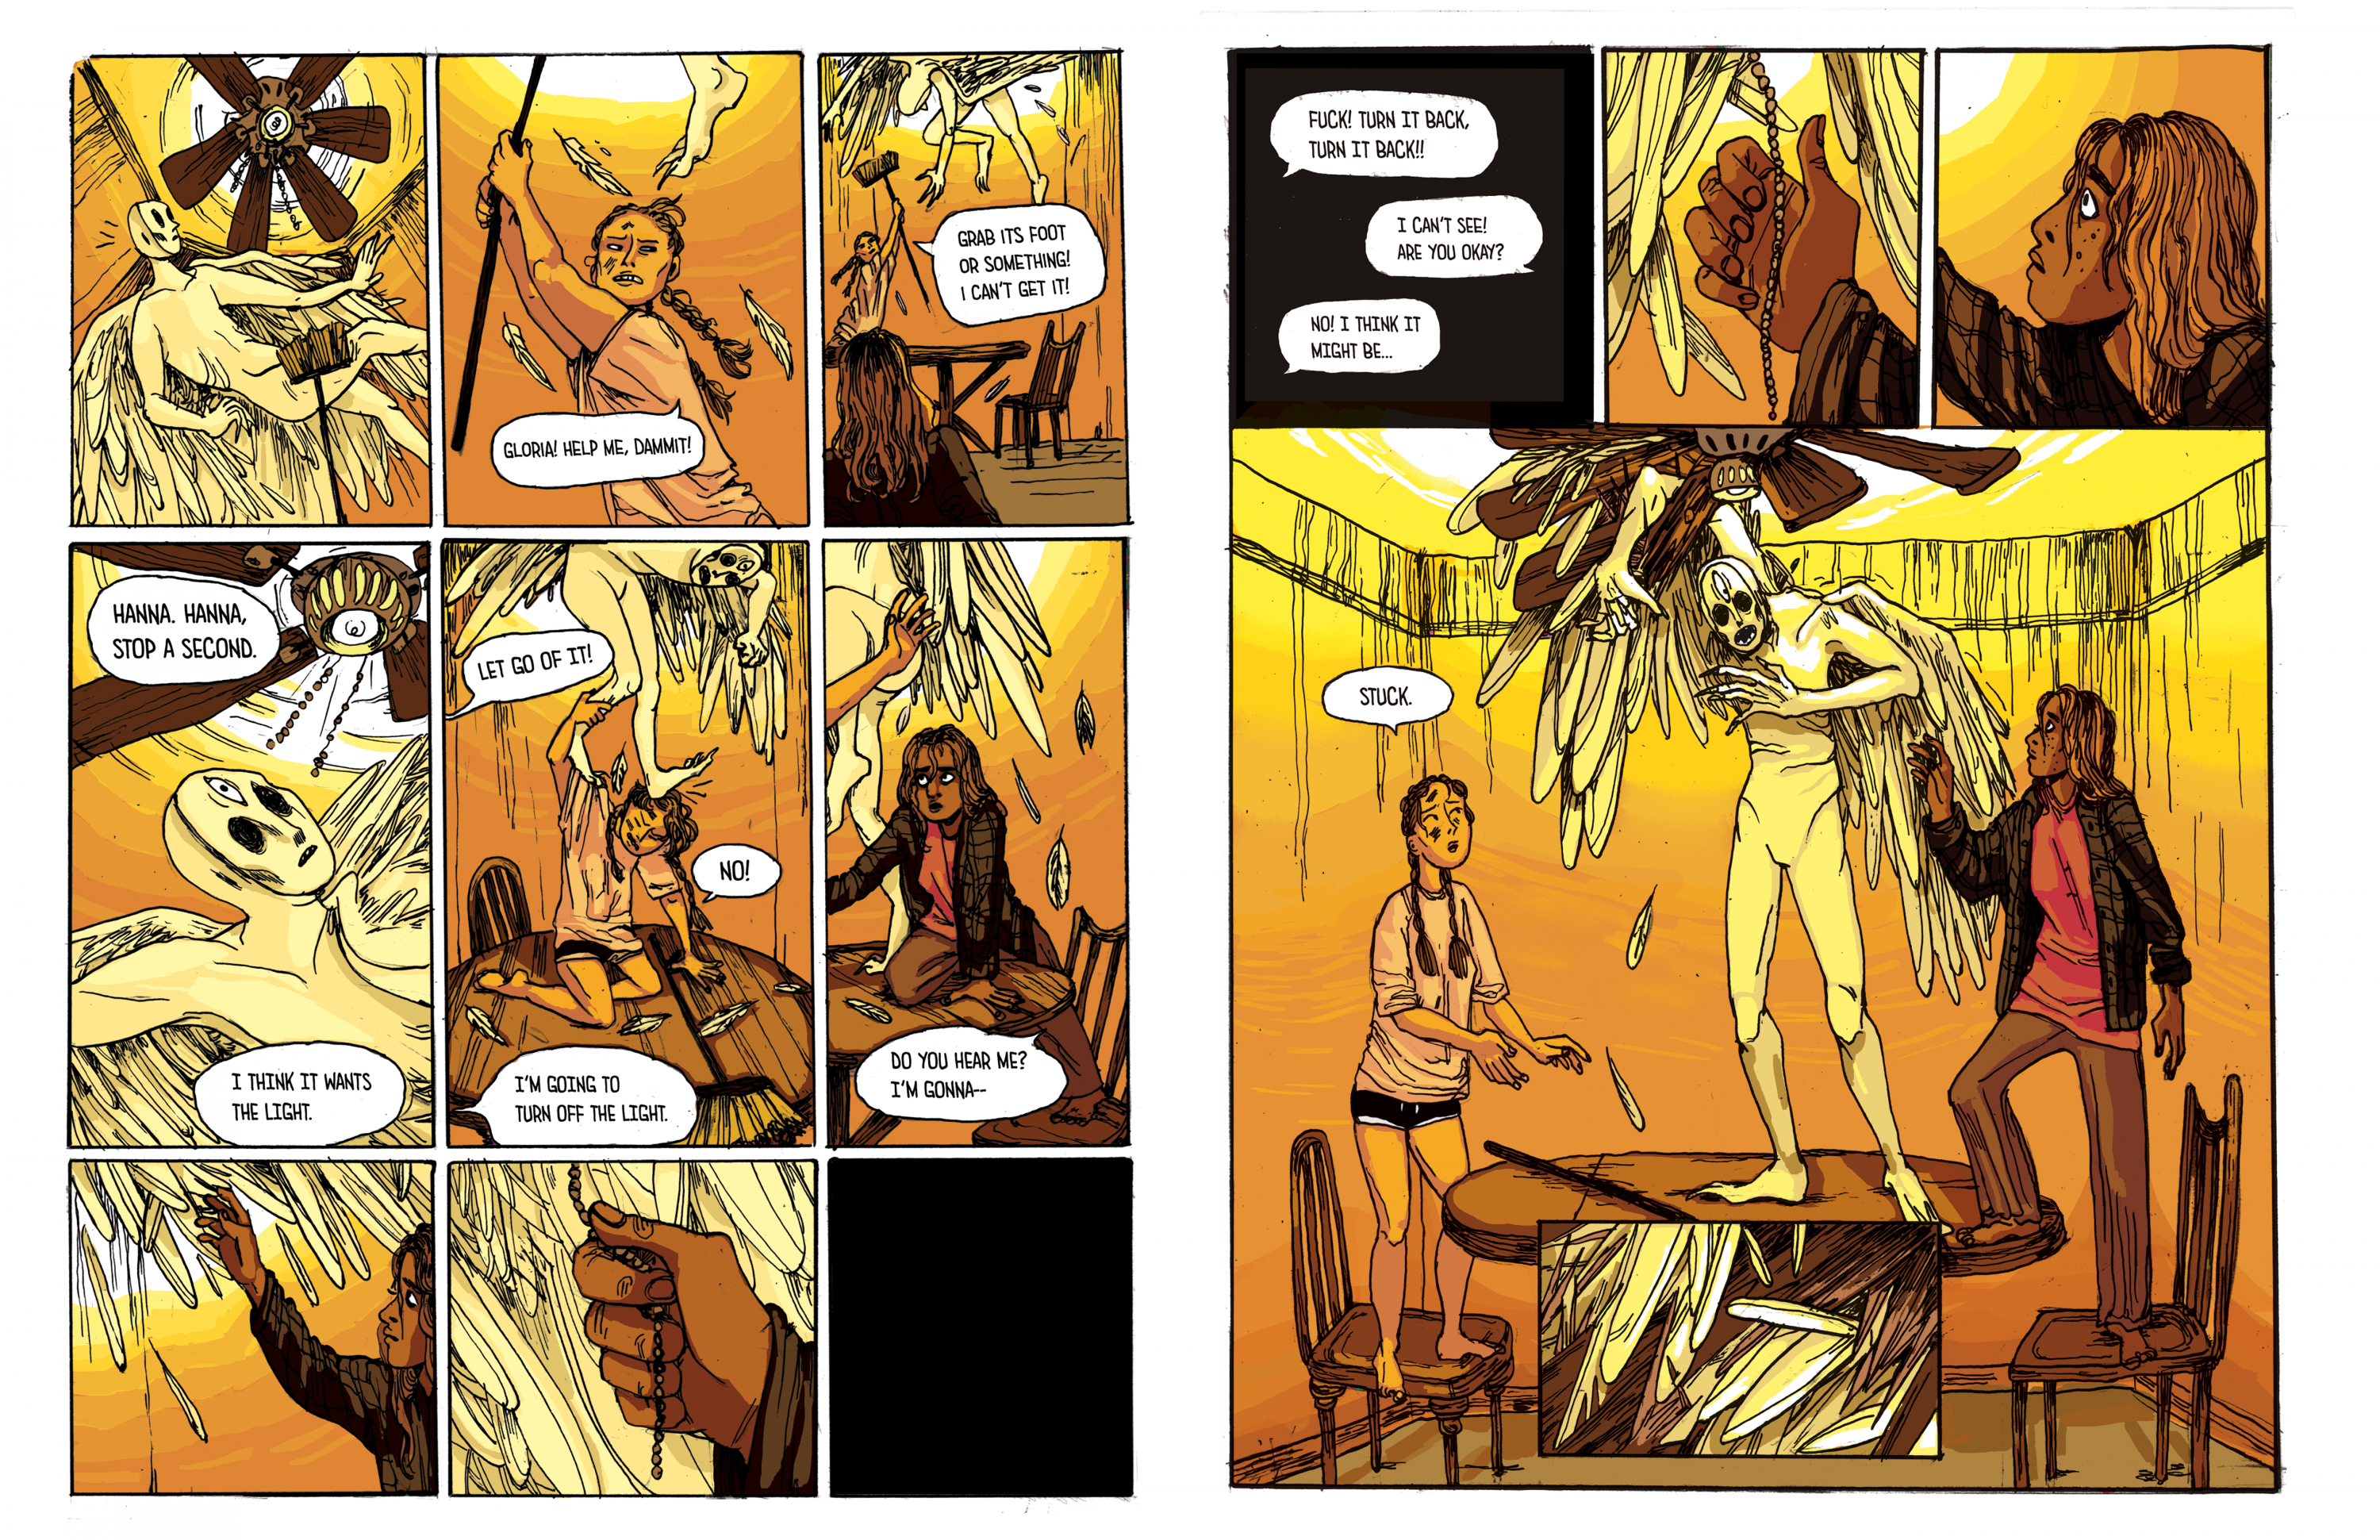 Four comic pages about two girls and an encounter with an angel. A girl with blond hair in braids named Hannah hears a strange knocking sound outside, and tells her friend Gloria, who has dark skin and blond hair. The angel breaks in through a window and